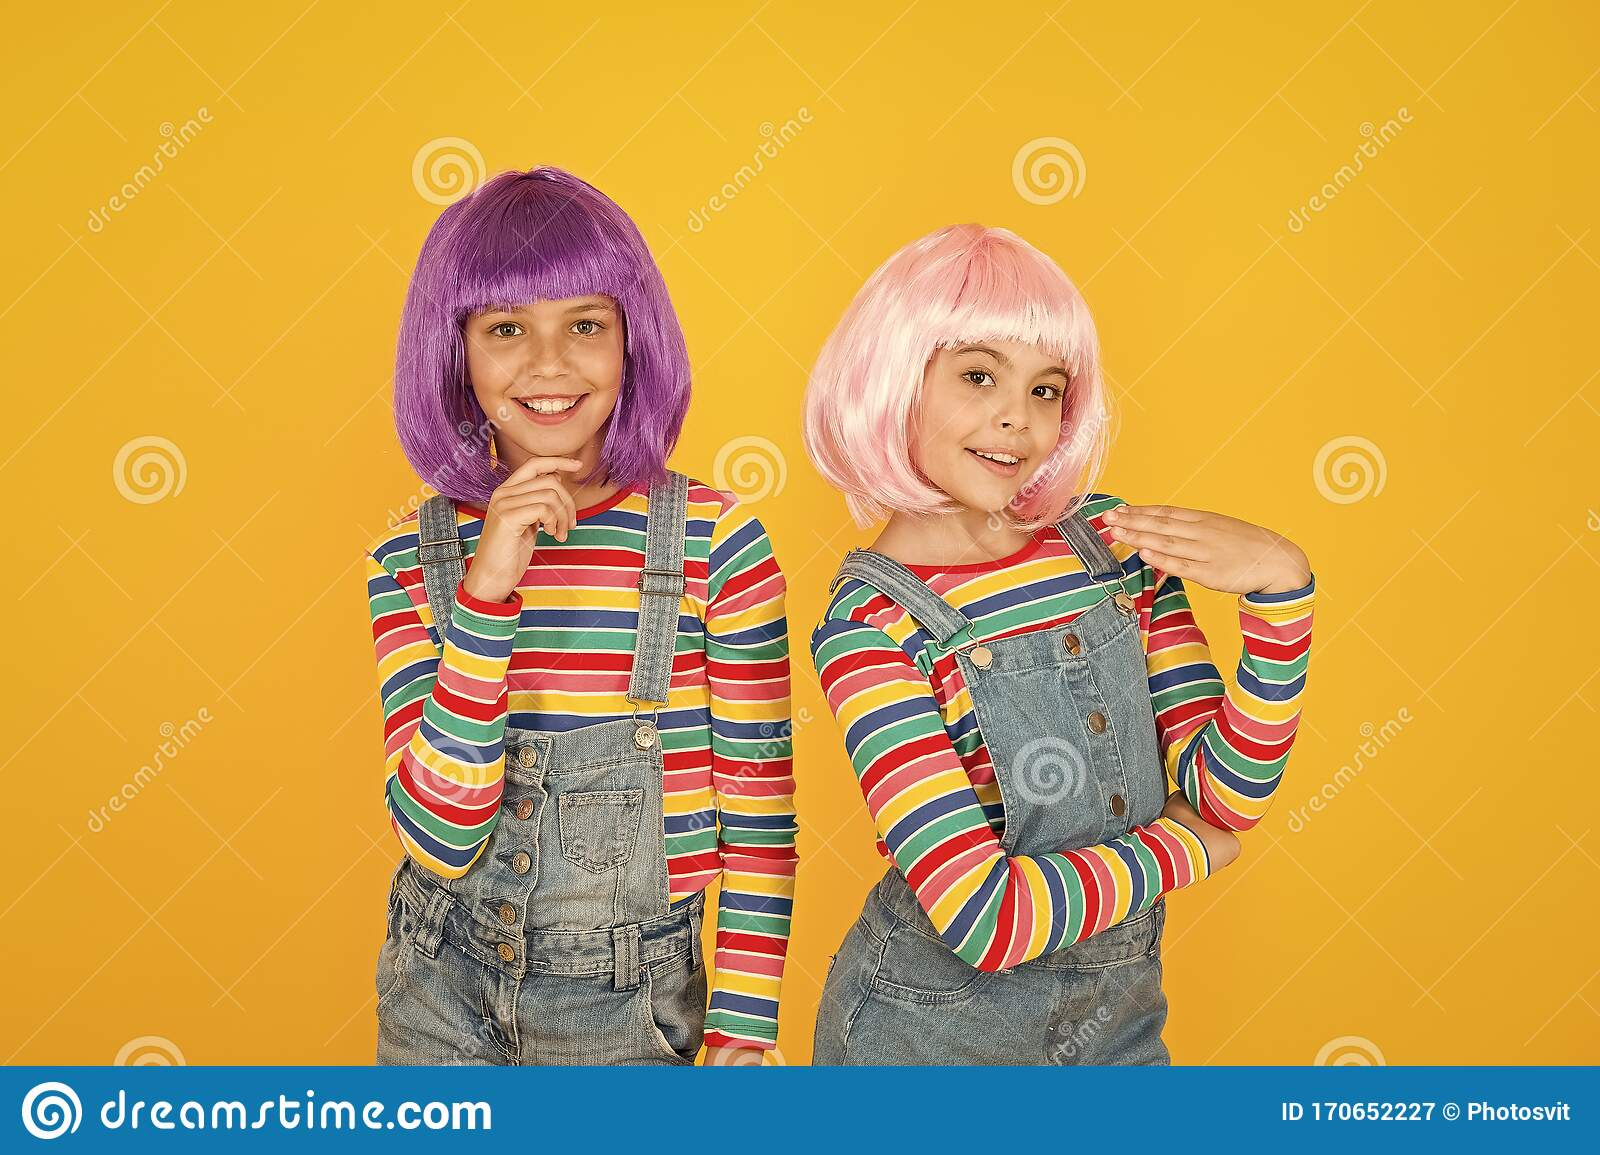 Evillecon has events for teens, young adults,. Anime Cosplay Party Concept Happy Little Girls Anime Fan Cheerful Friends In Colorful Wigs Anime Convention Stock Image Image Of Fantasy Japan 170652227